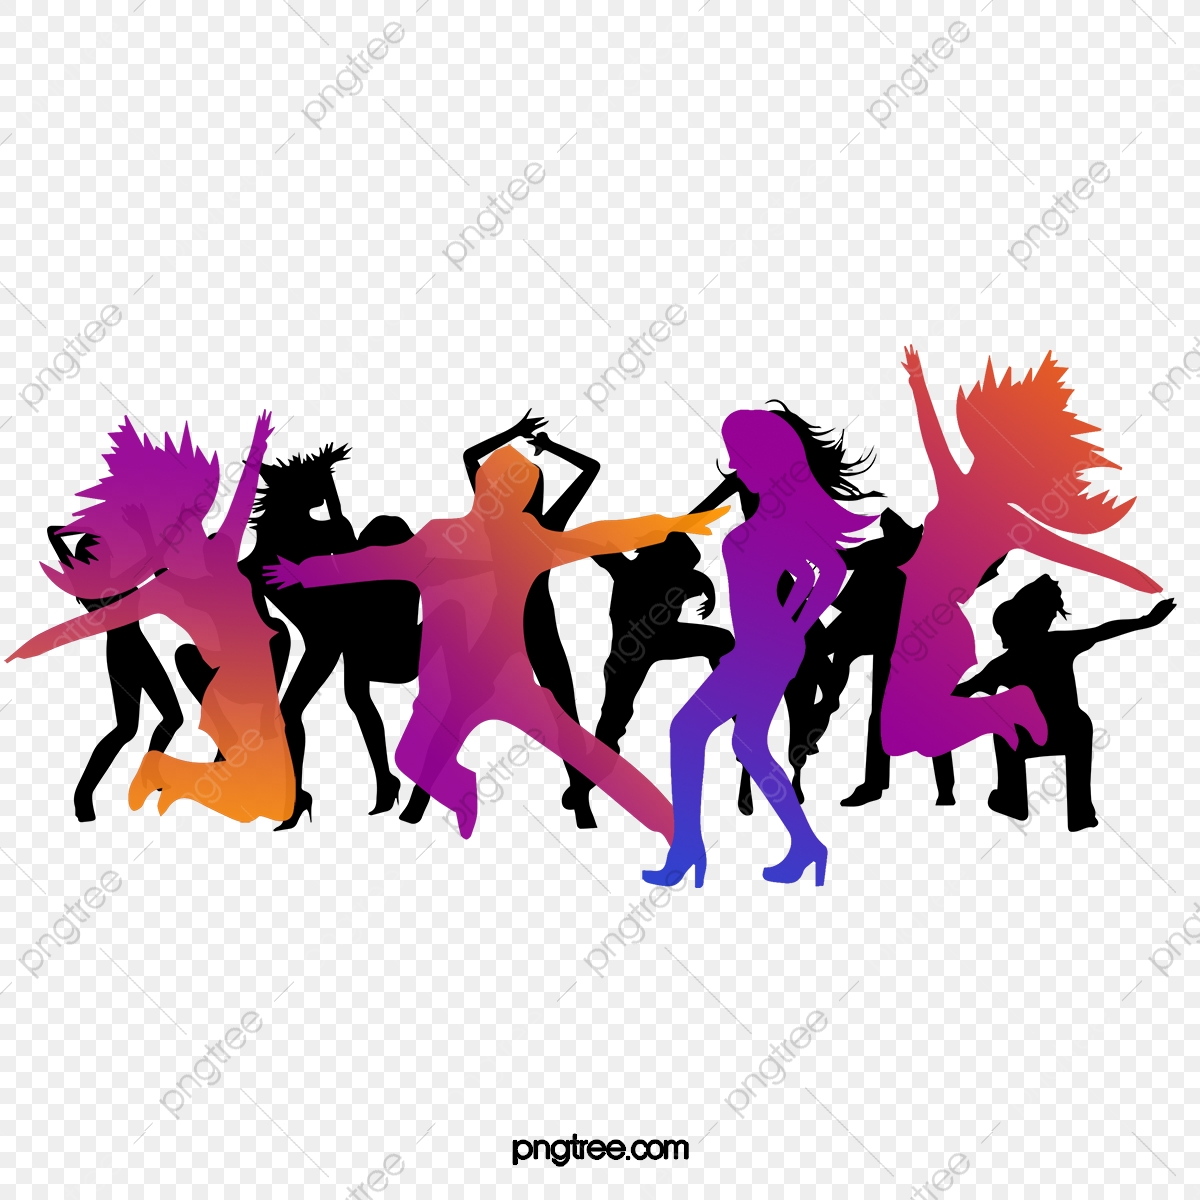 Silhouette People Jumping Dance People Clipart Dance Clipart Crowd Png Transparent Clipart Image And Psd File For Free Download